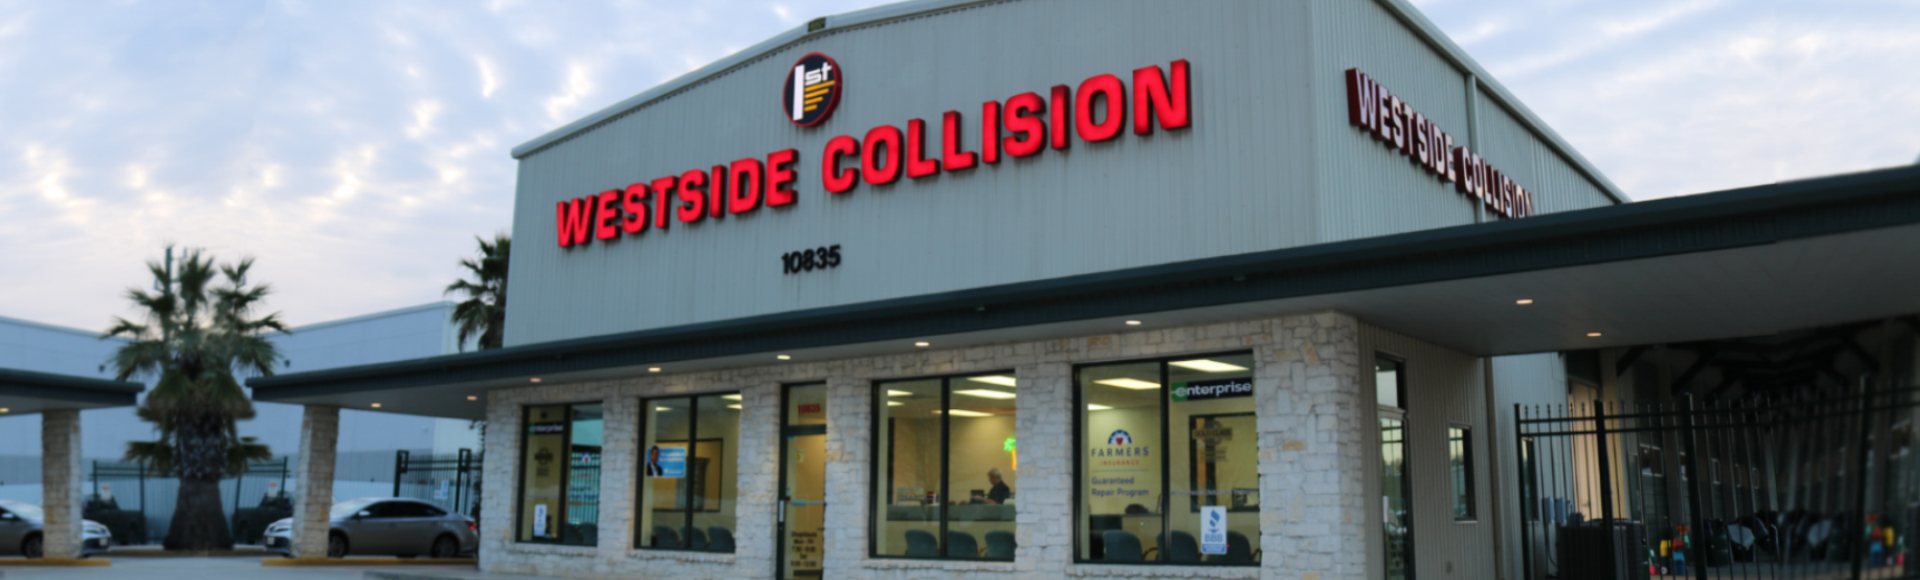 Westside Collision